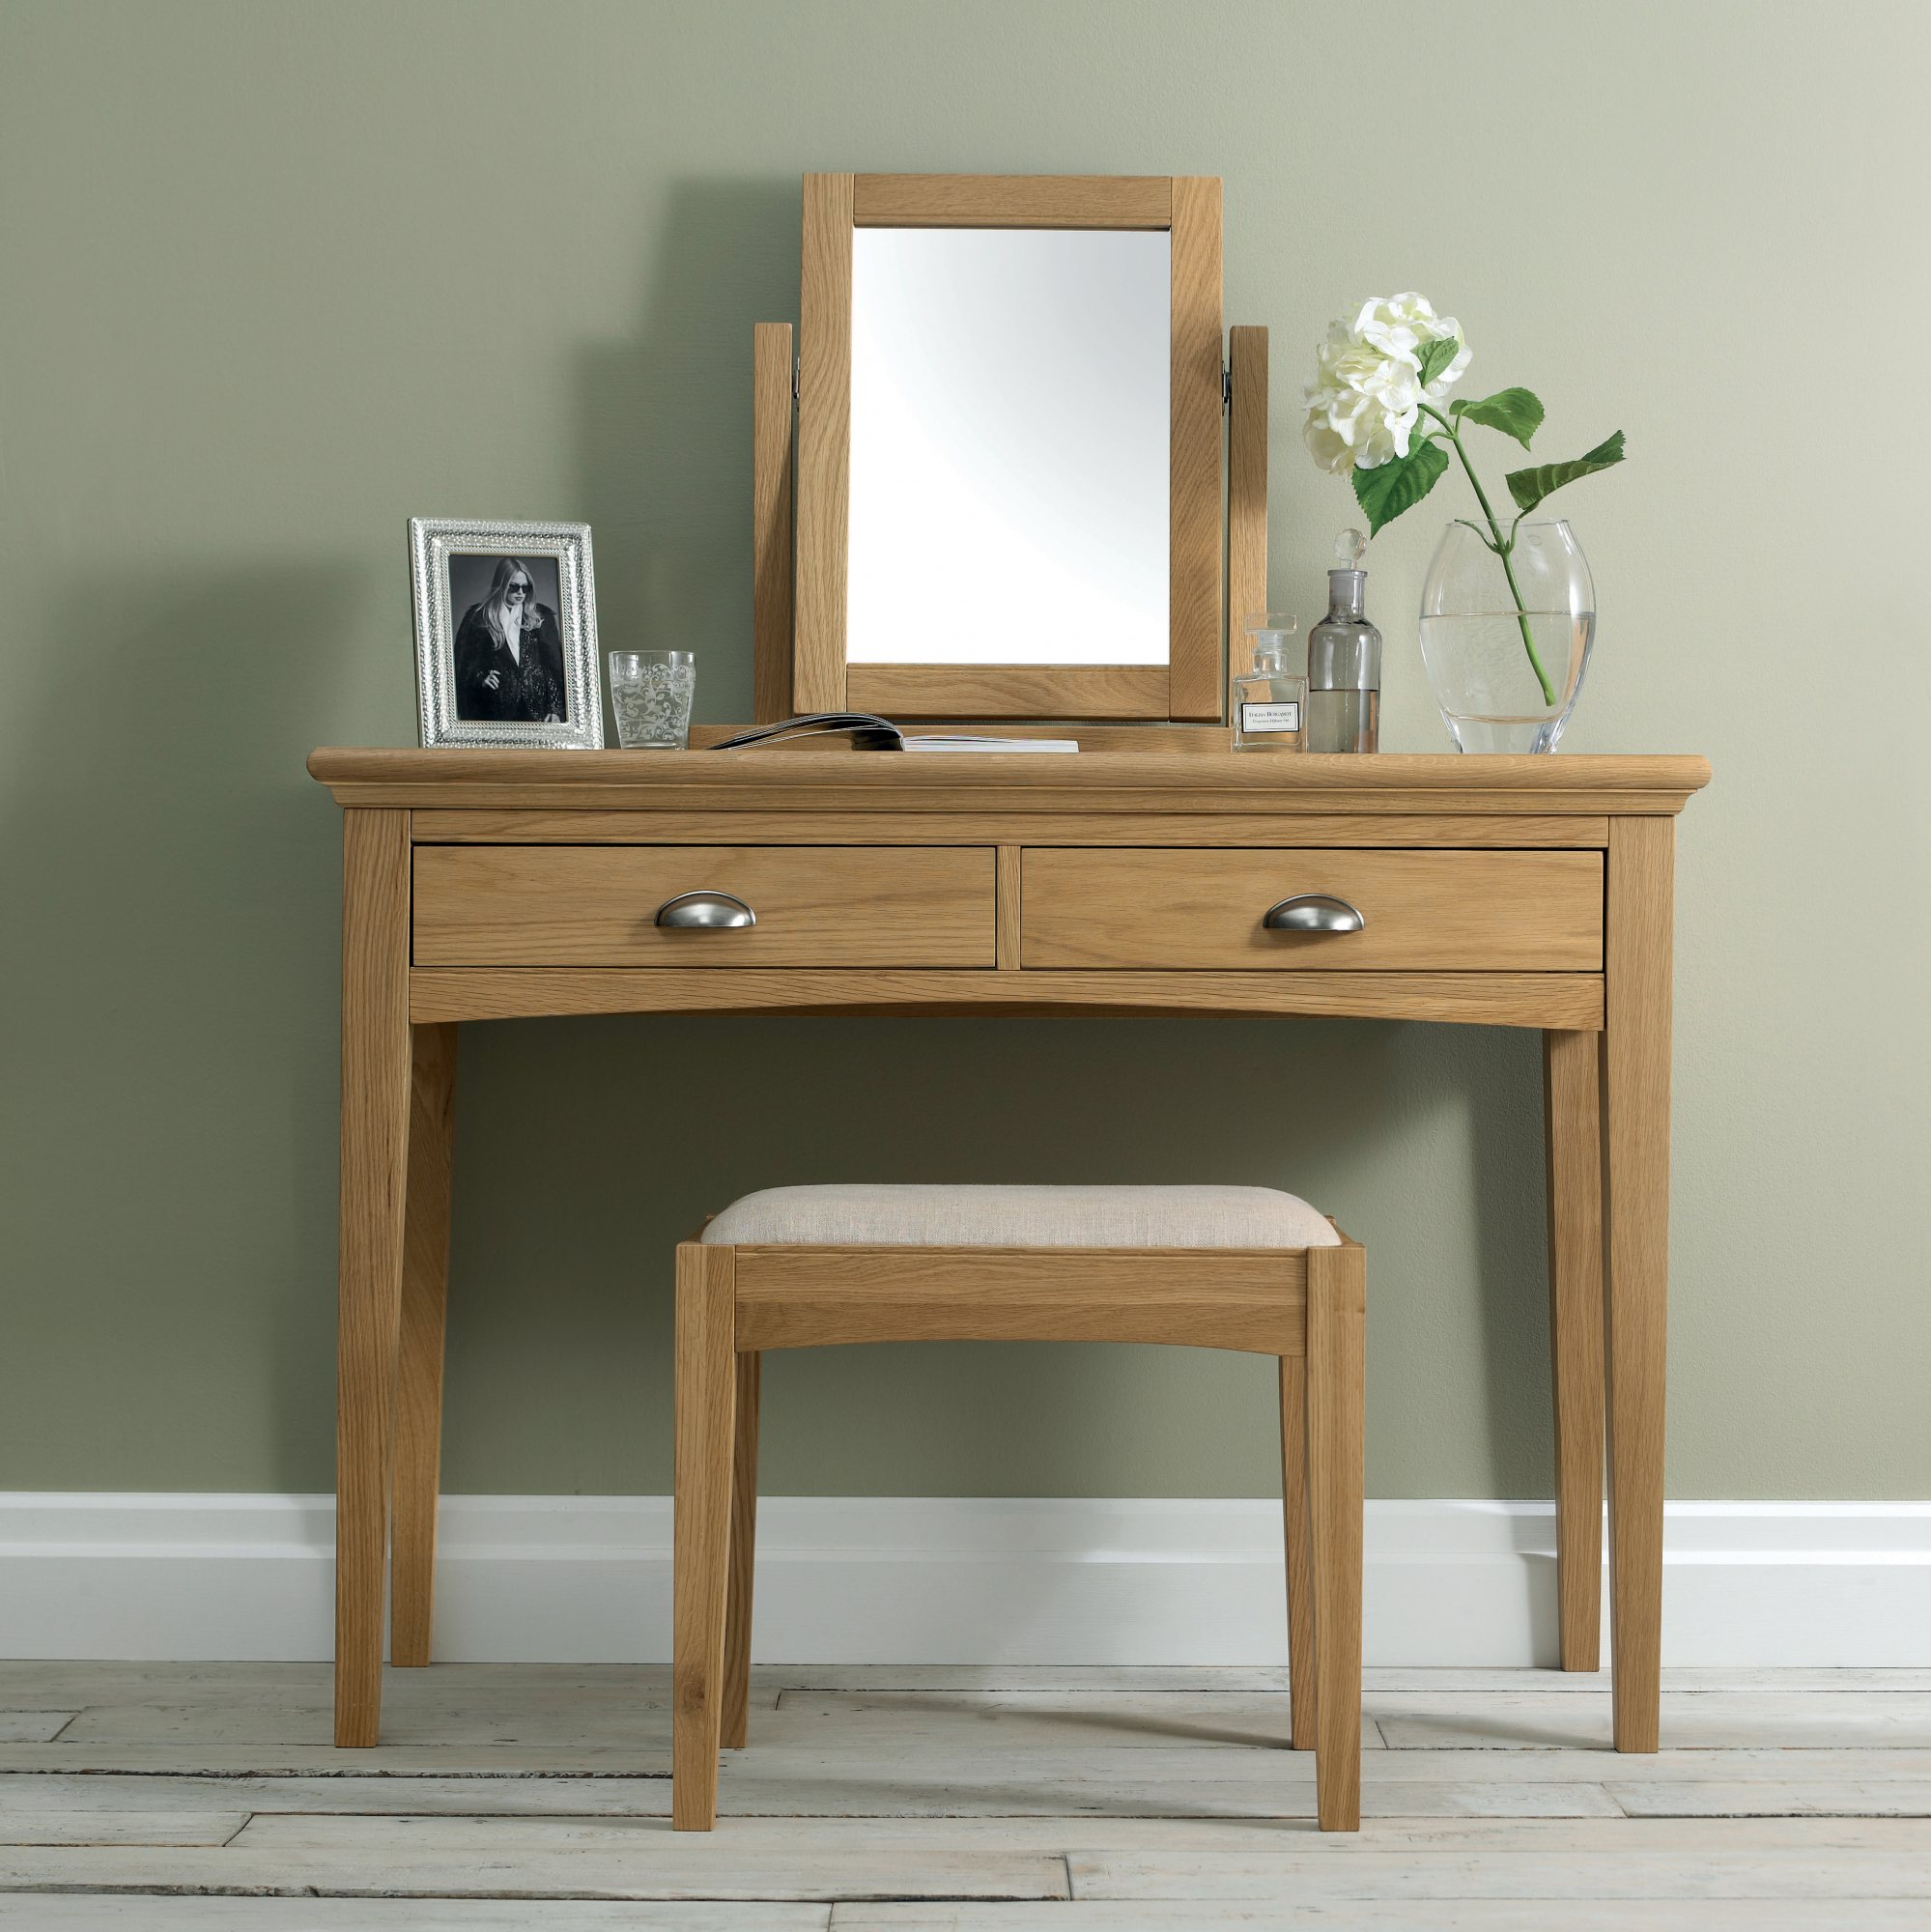 KYRA OAK DRESSING TABLE - L110cm x D48cm x H79cm